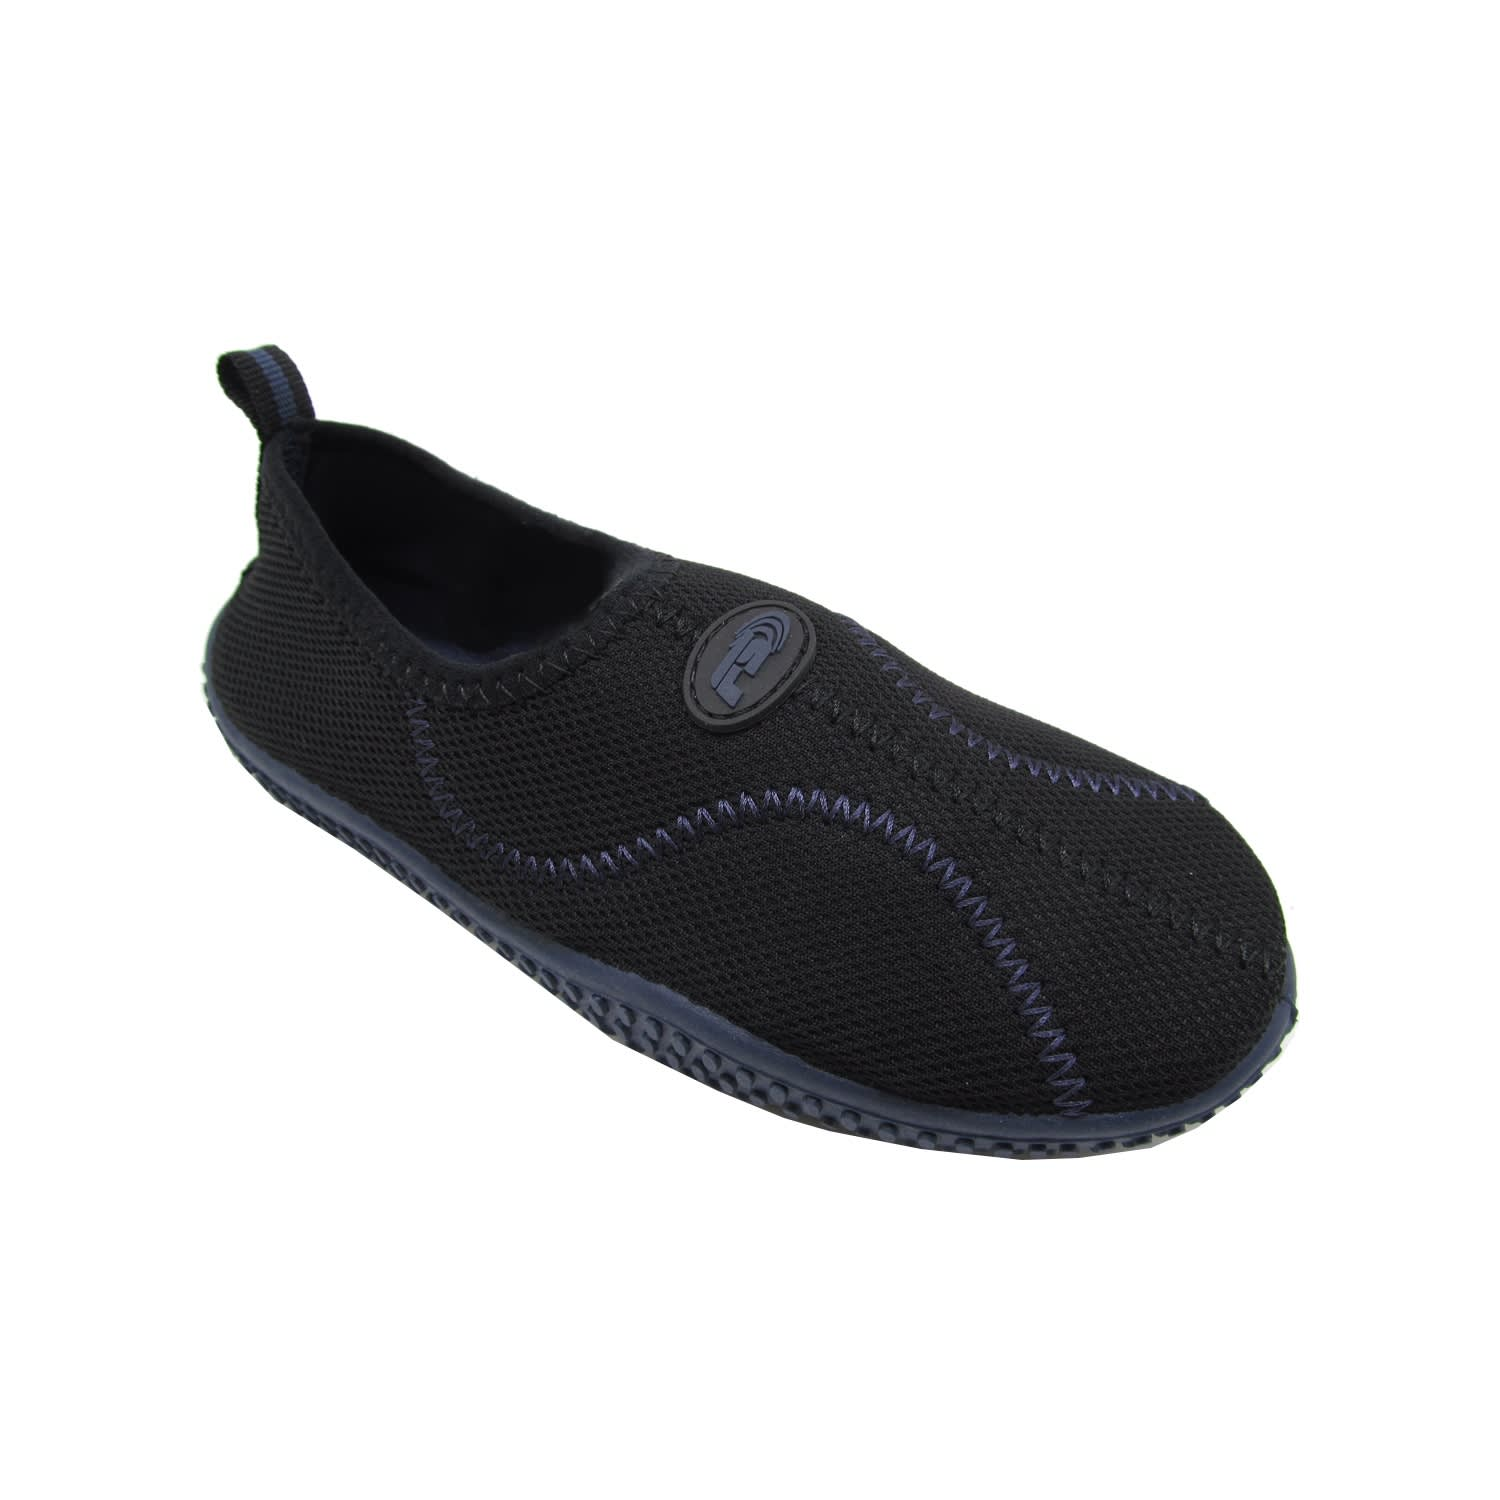 Freesport Slip-On Boys Aqua Booties Navy